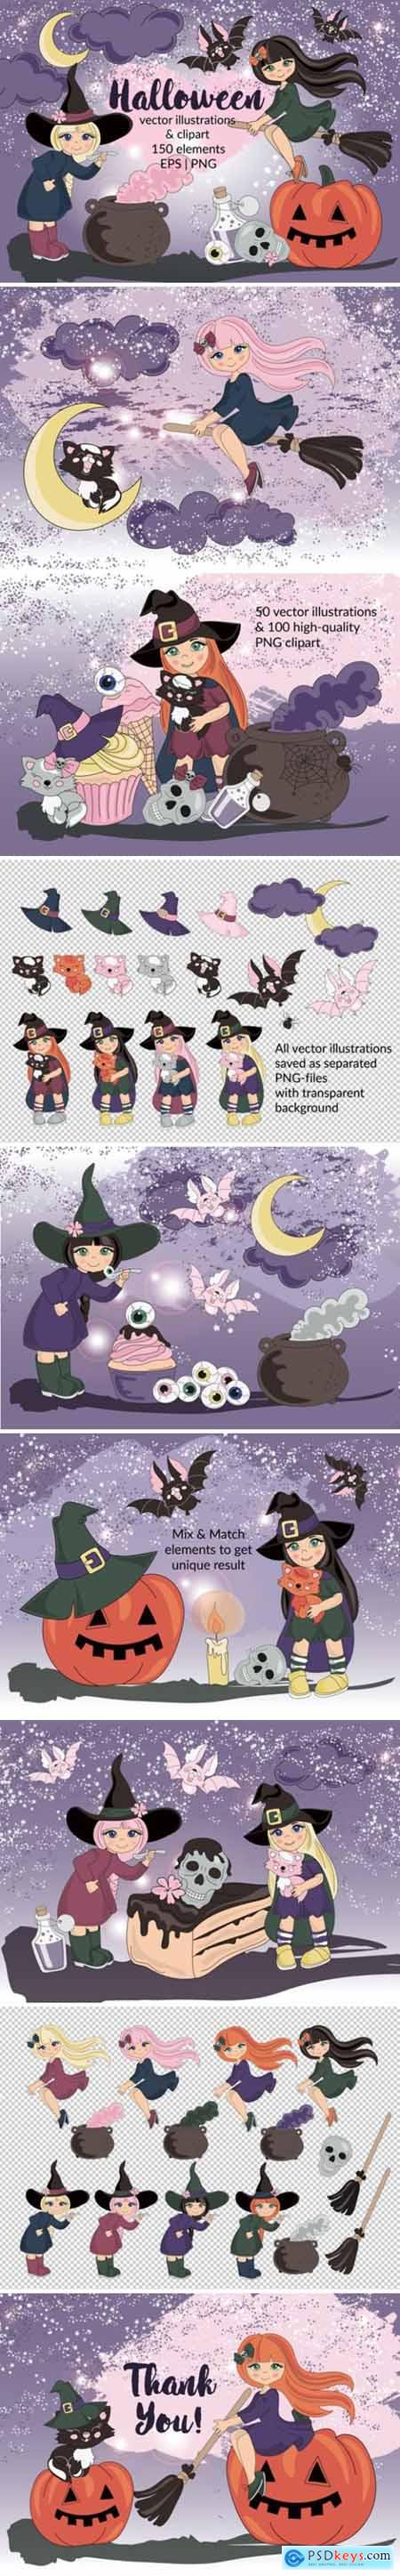 HALLOWEEN Clipart & Digital Print Set Color Vector Illustration 618149